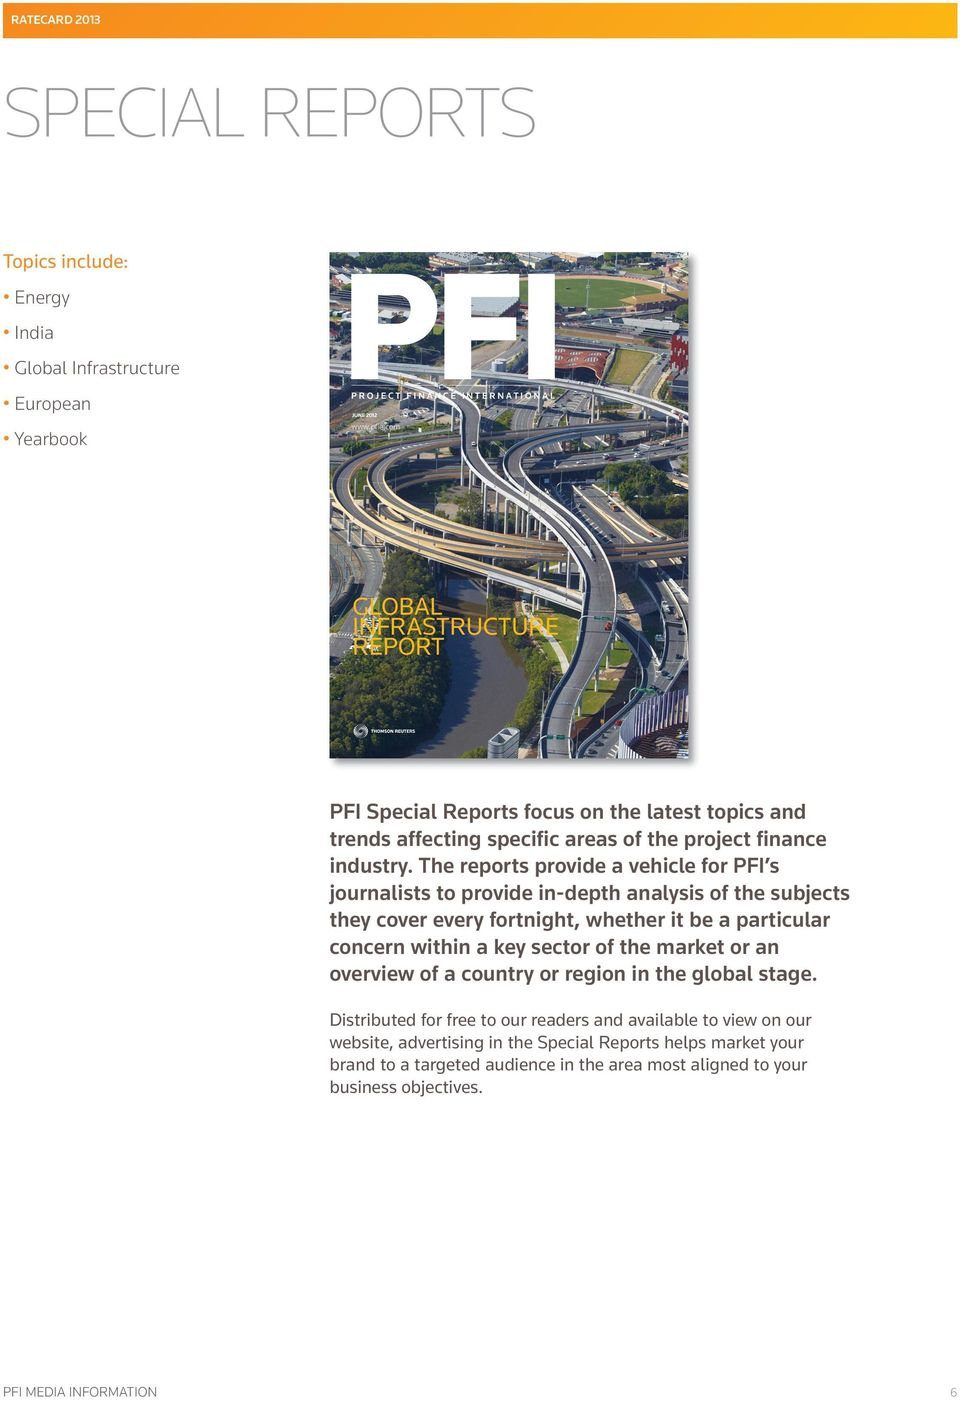 The reports provide a vehicle for PFI s journalists to provide in-depth analysis of the subjects they cover every fortnight, whether it be a particular concern within a key sector of the market or an